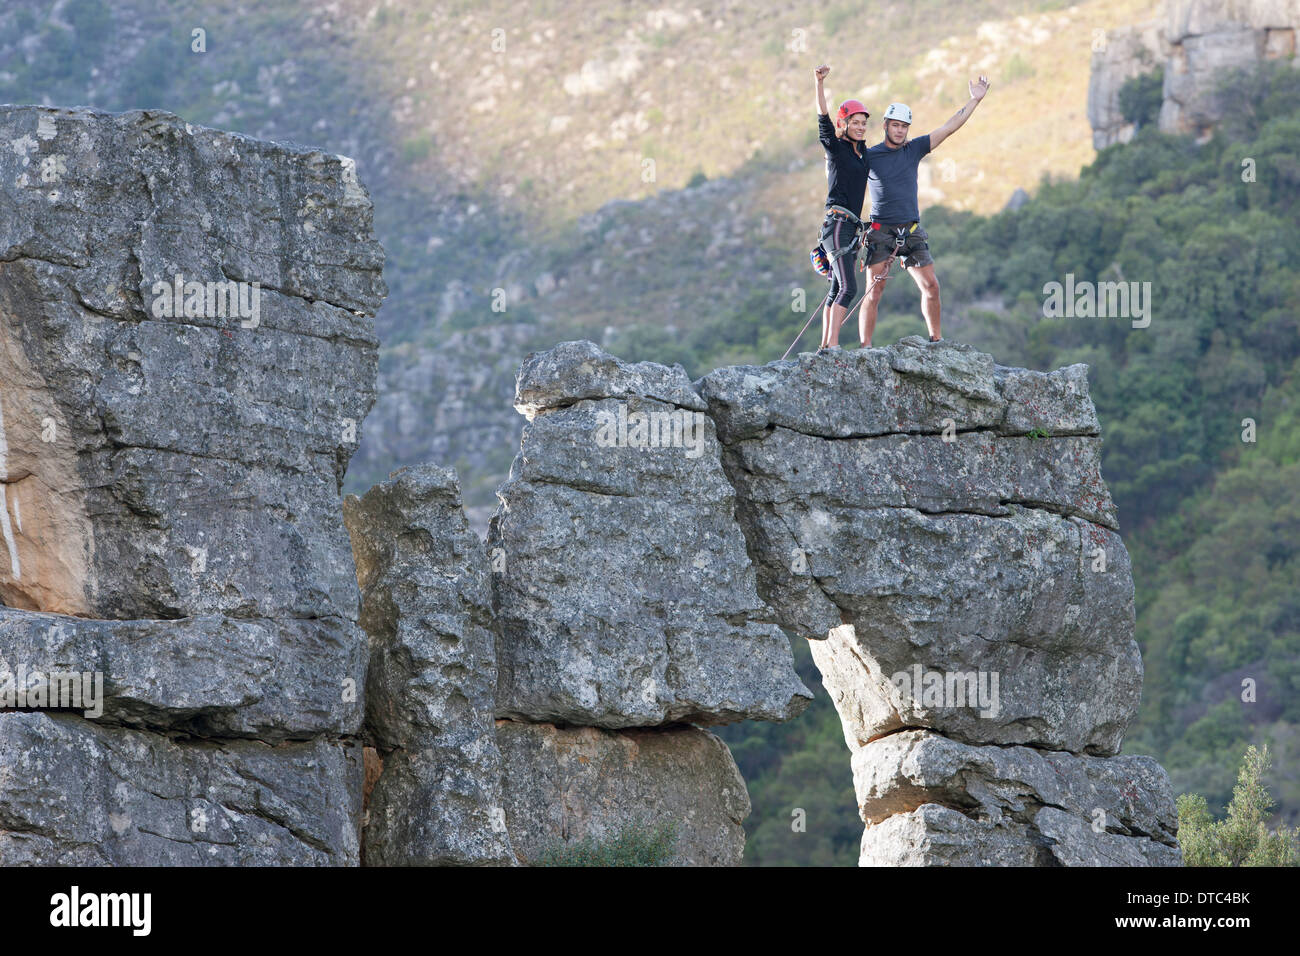 Young rock climbing couple celebrating on rock formation - Stock Image